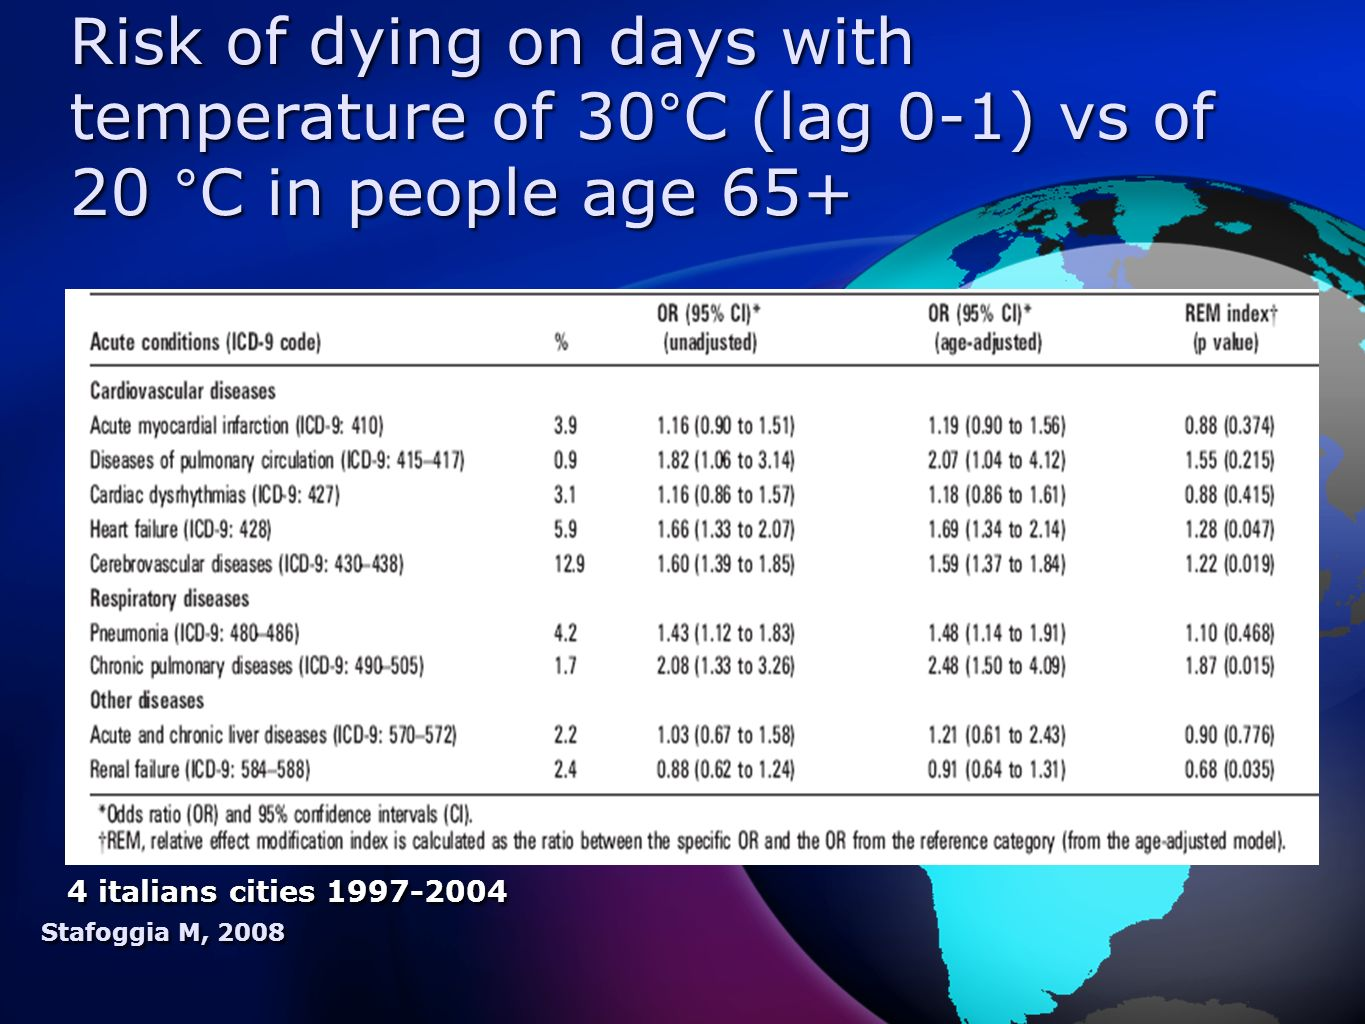 Stafoggia M, 2008 Risk of dying on days with temperature of 30°C (lag 0-1) vs of 20 °C in people age 65+ 4 italians cities 1997-2004